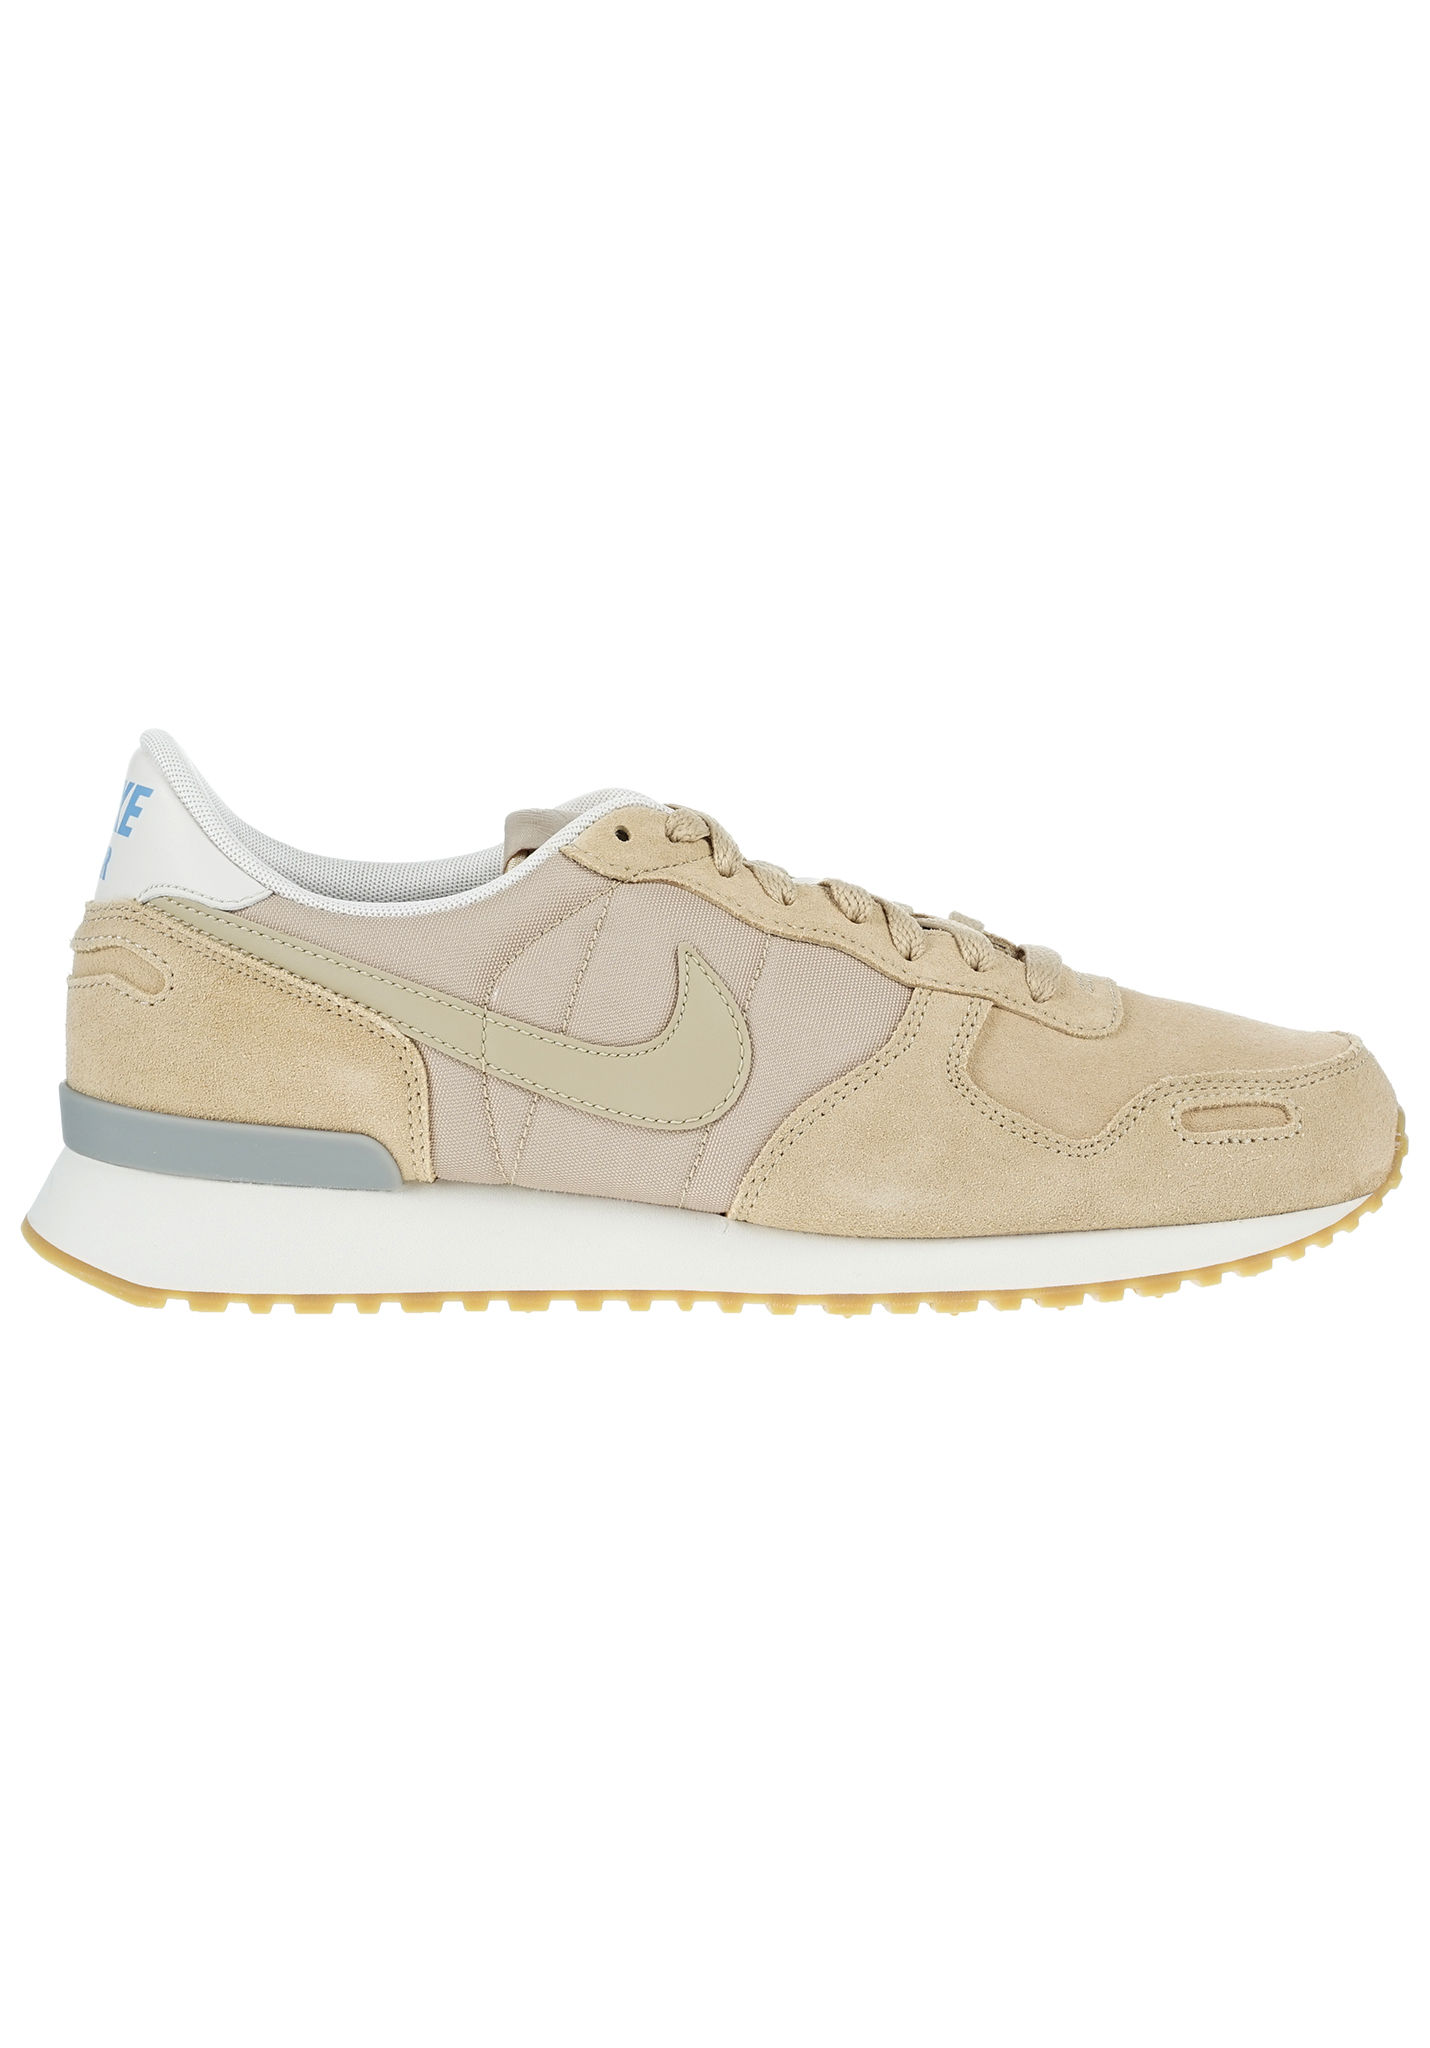 reputable site 23ab7 a6450 NIKE SPORTSWEAR Air Vrtx Ltr - Sneakers for Men - Beige - Pl